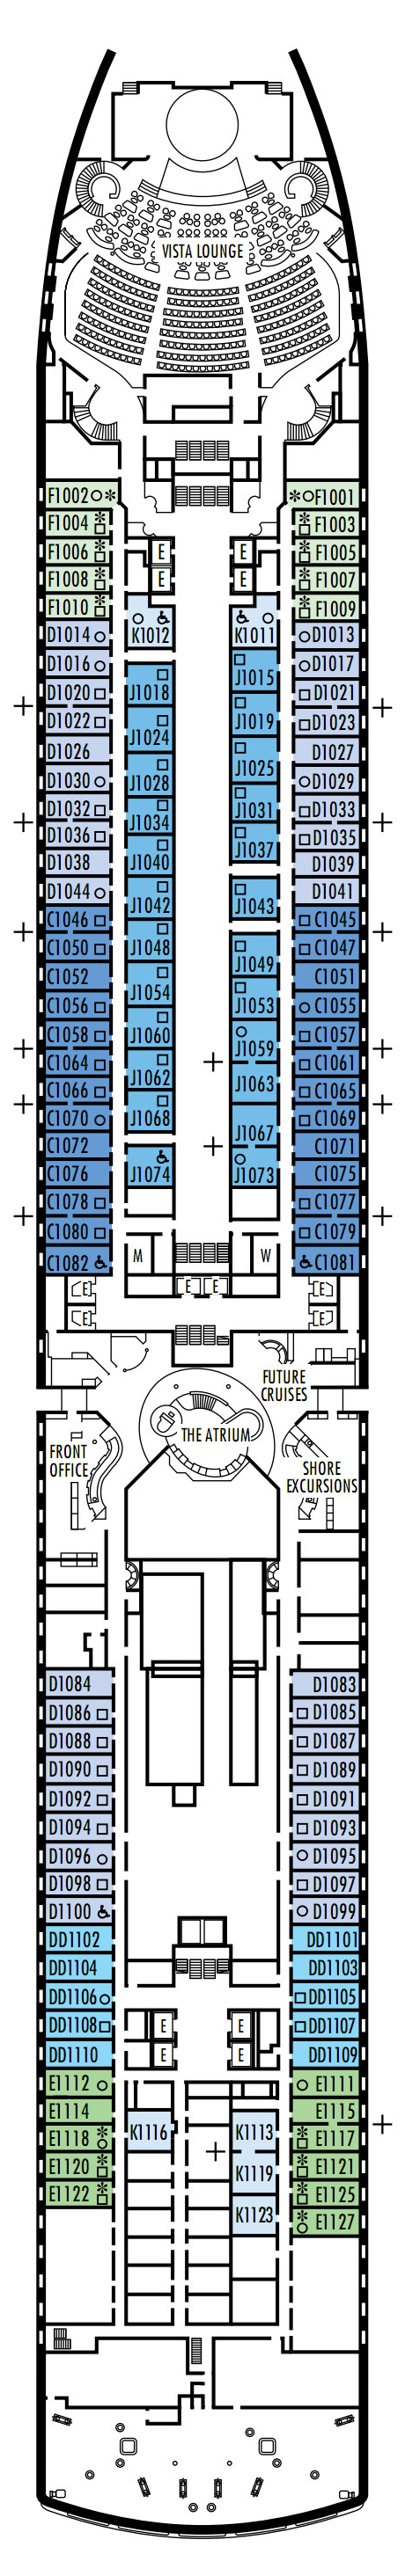 Westerdam Deck 1 - Main Deck   layout